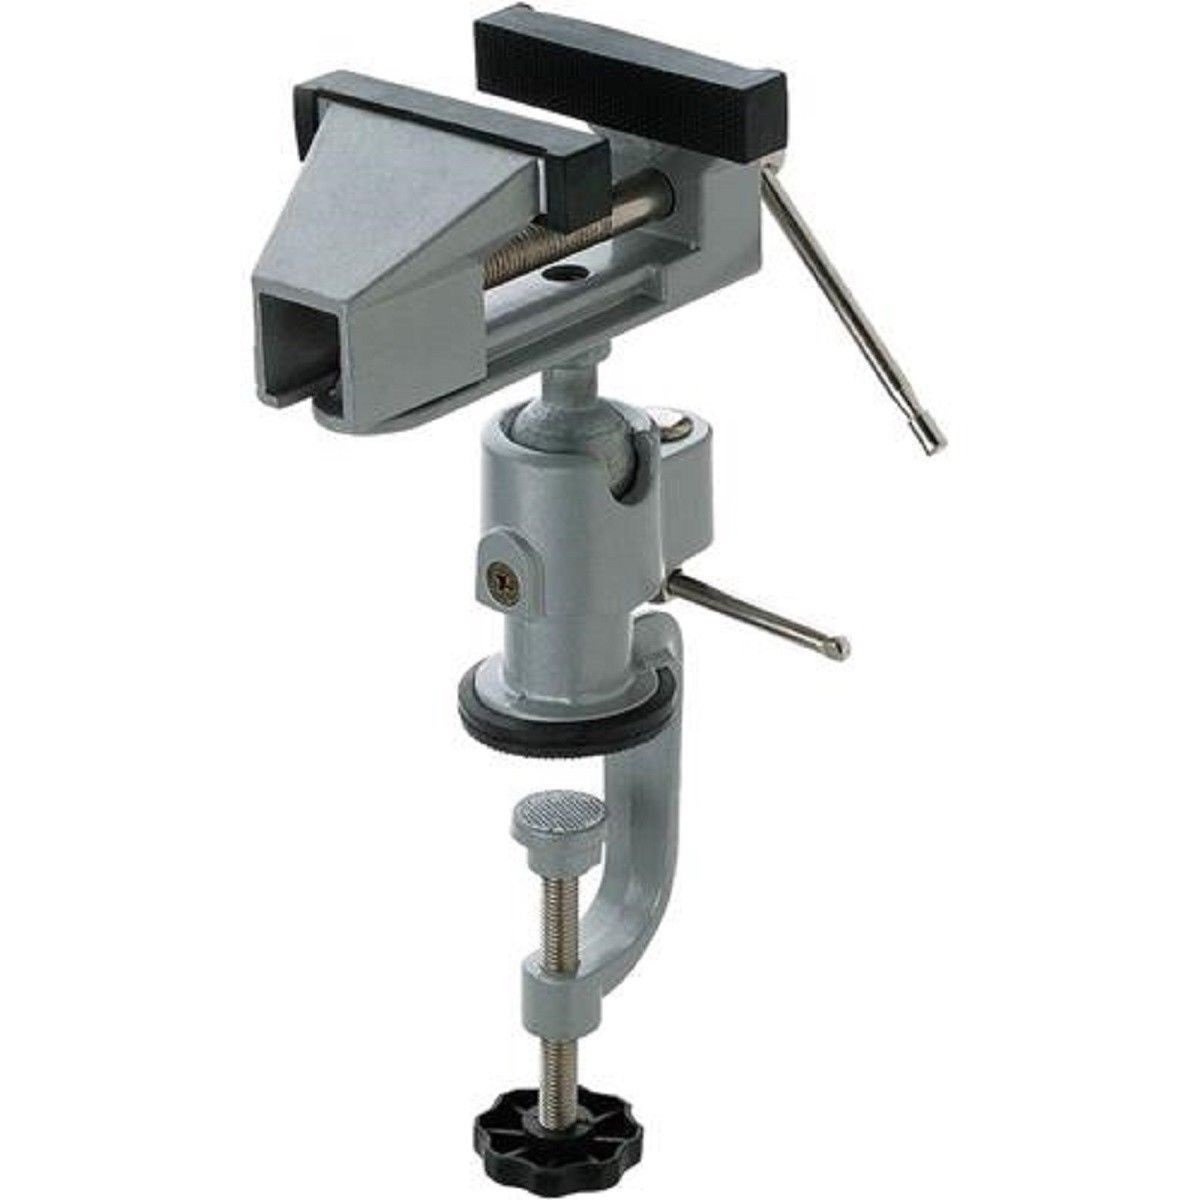 PROFESSIONAL CARVERS UNIVERSAL 360 DEGREE BALL ADJUSTABLE BENCH VISE,NEW